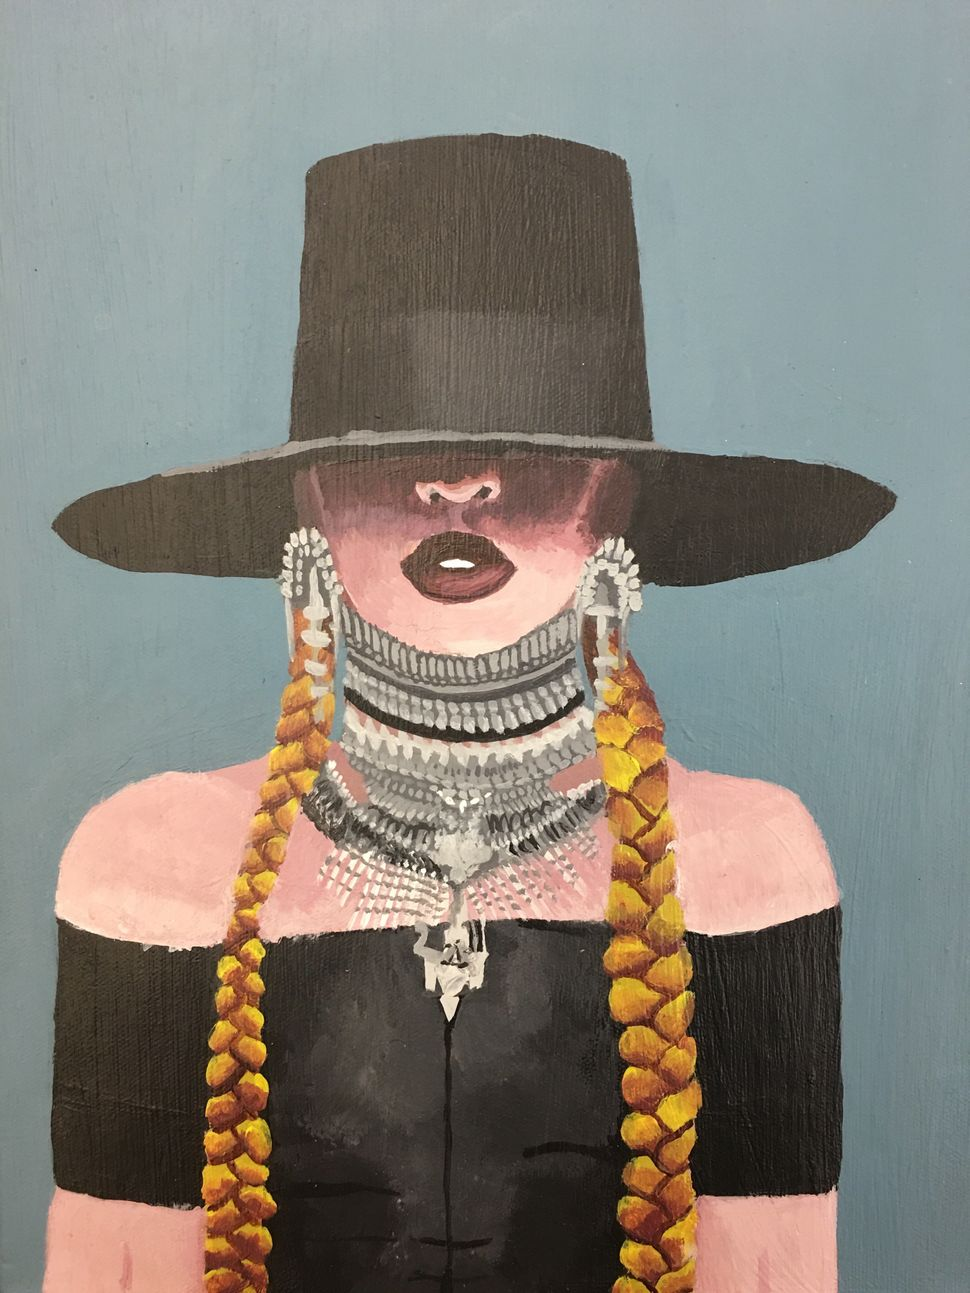 Myasia Dowdell, Beyonce, 2016, Acrylic on Canvas